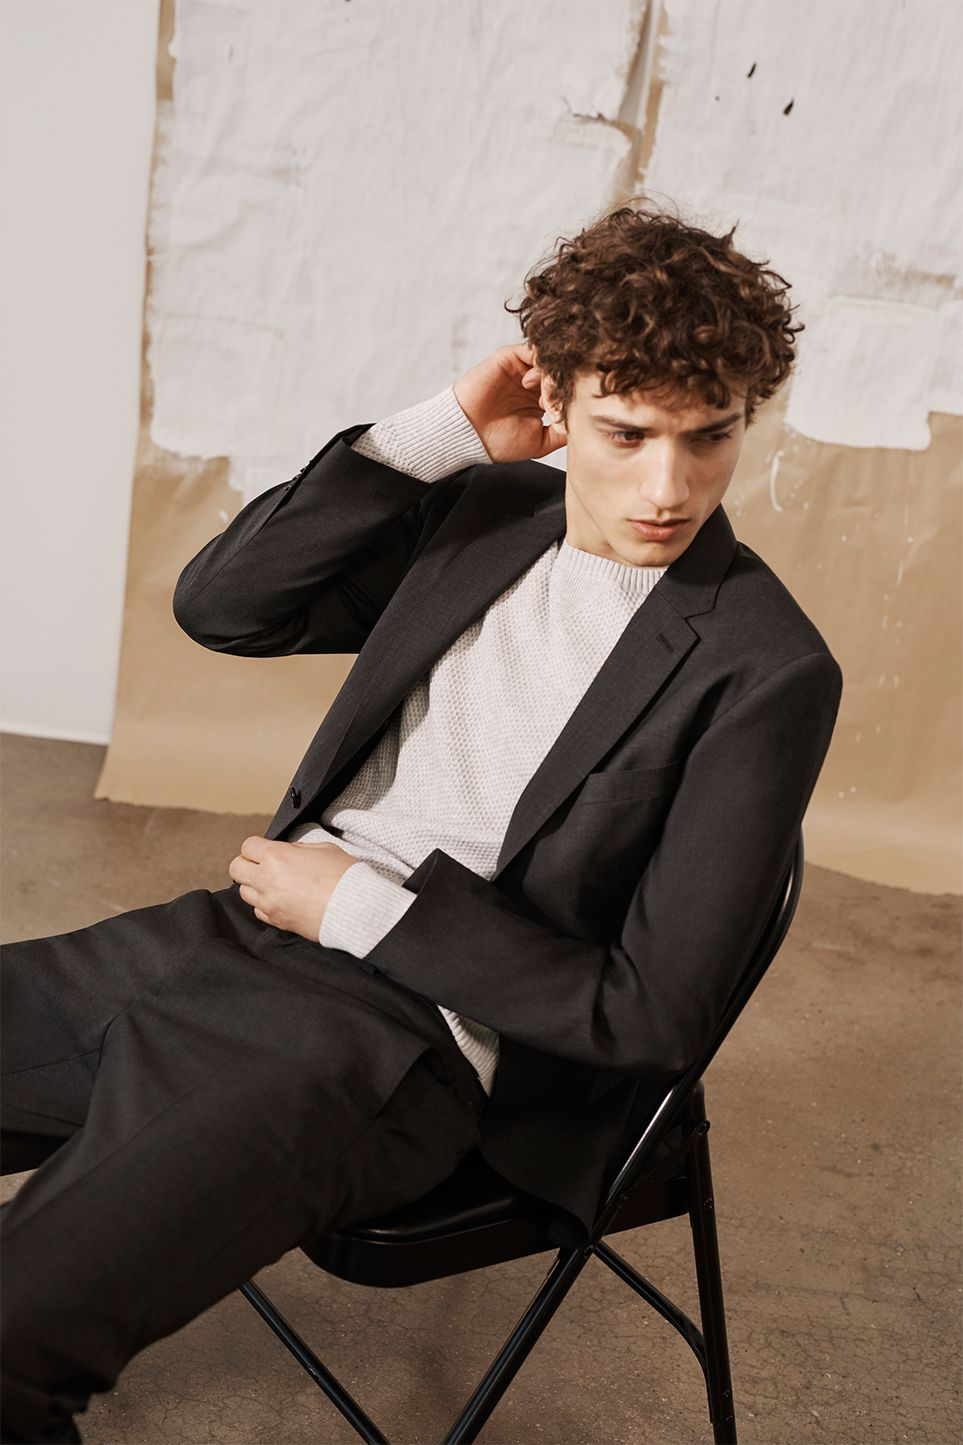 https://www.clubmonaco.ca/on/demandware.static/-/Library-Sites-ClubMonaco/en_CA/v1561547102506/Men New Arrivals 1_January_New-Arrivals_02.jpg